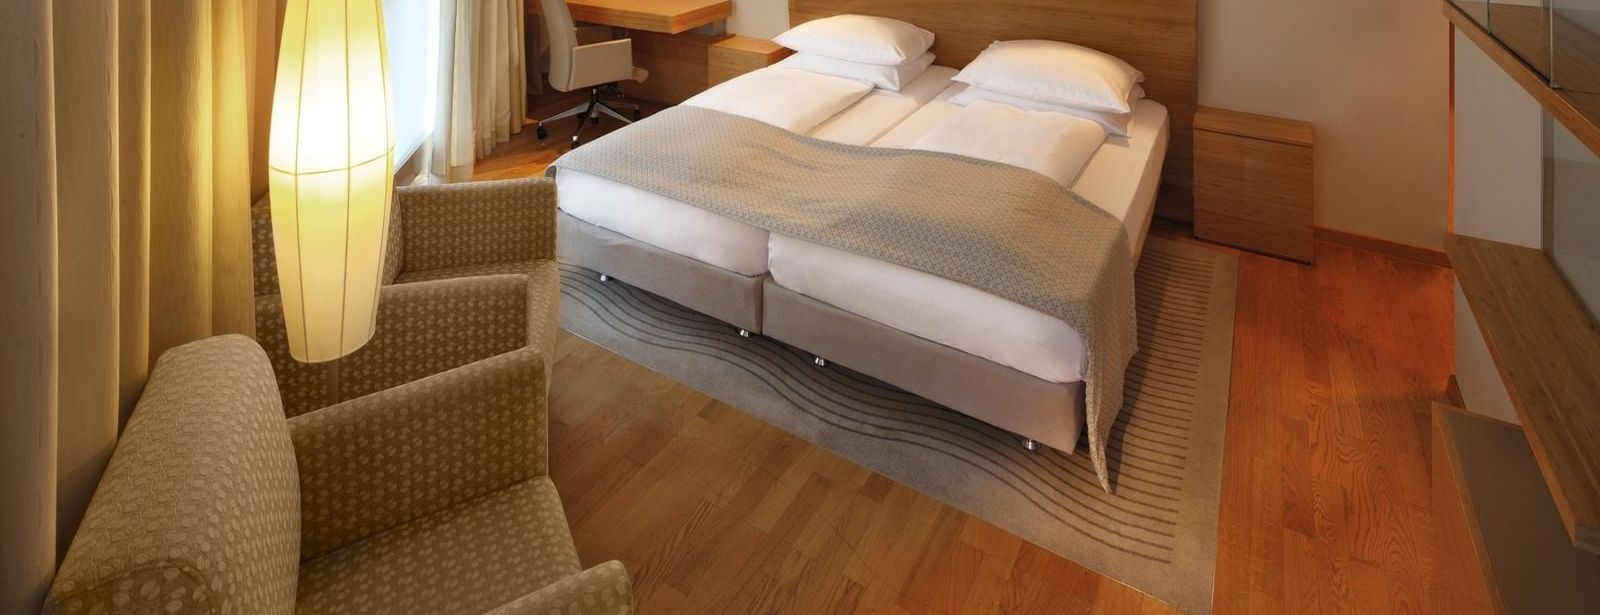 Panoramahaus Dornbirn Hotels: Executive Rooms